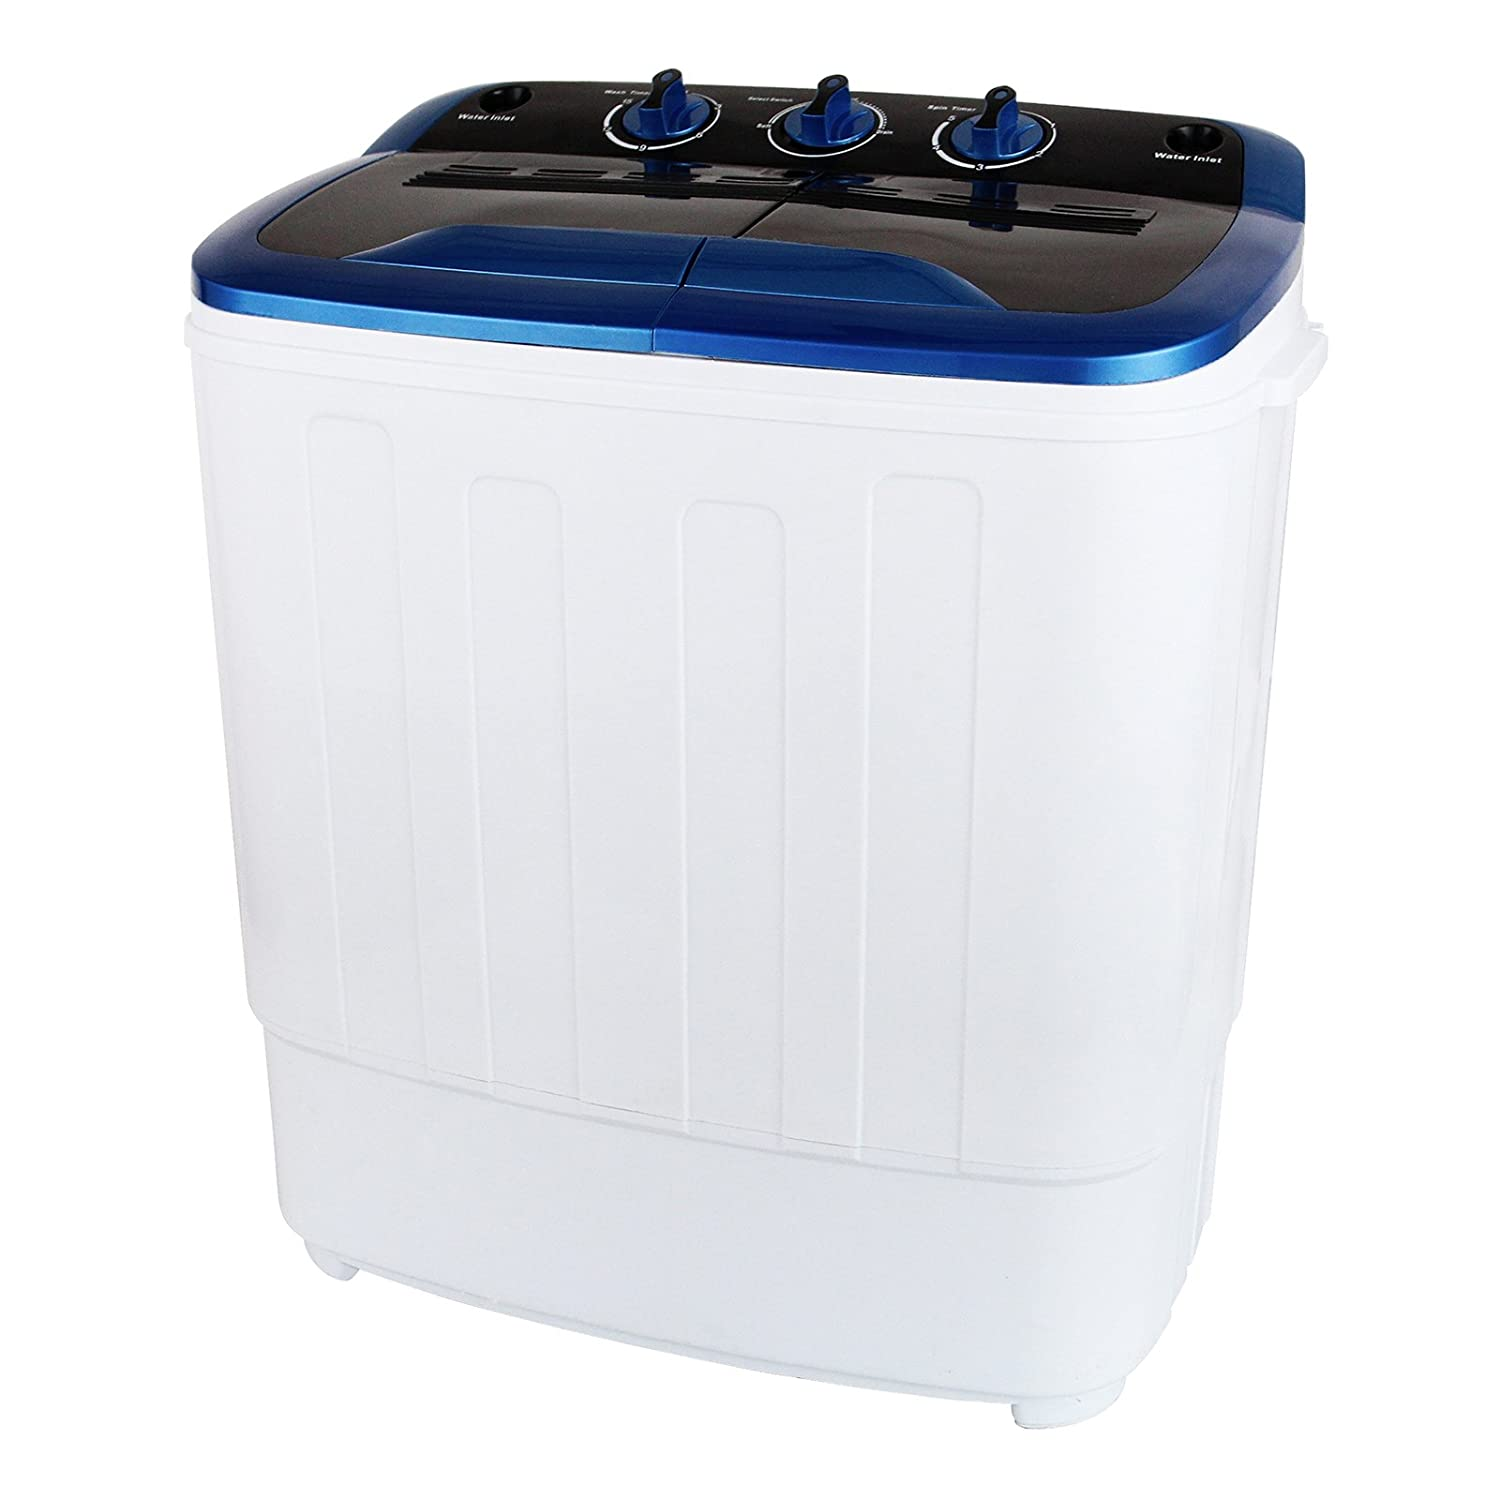 KUPPET 13Ibs Portable Mini Compact Twin Tub Washing Machine Washer Spin Dryer, Ideal for Dorms, Apartments, RVs, Camping etc, White & Blue KP1040600A